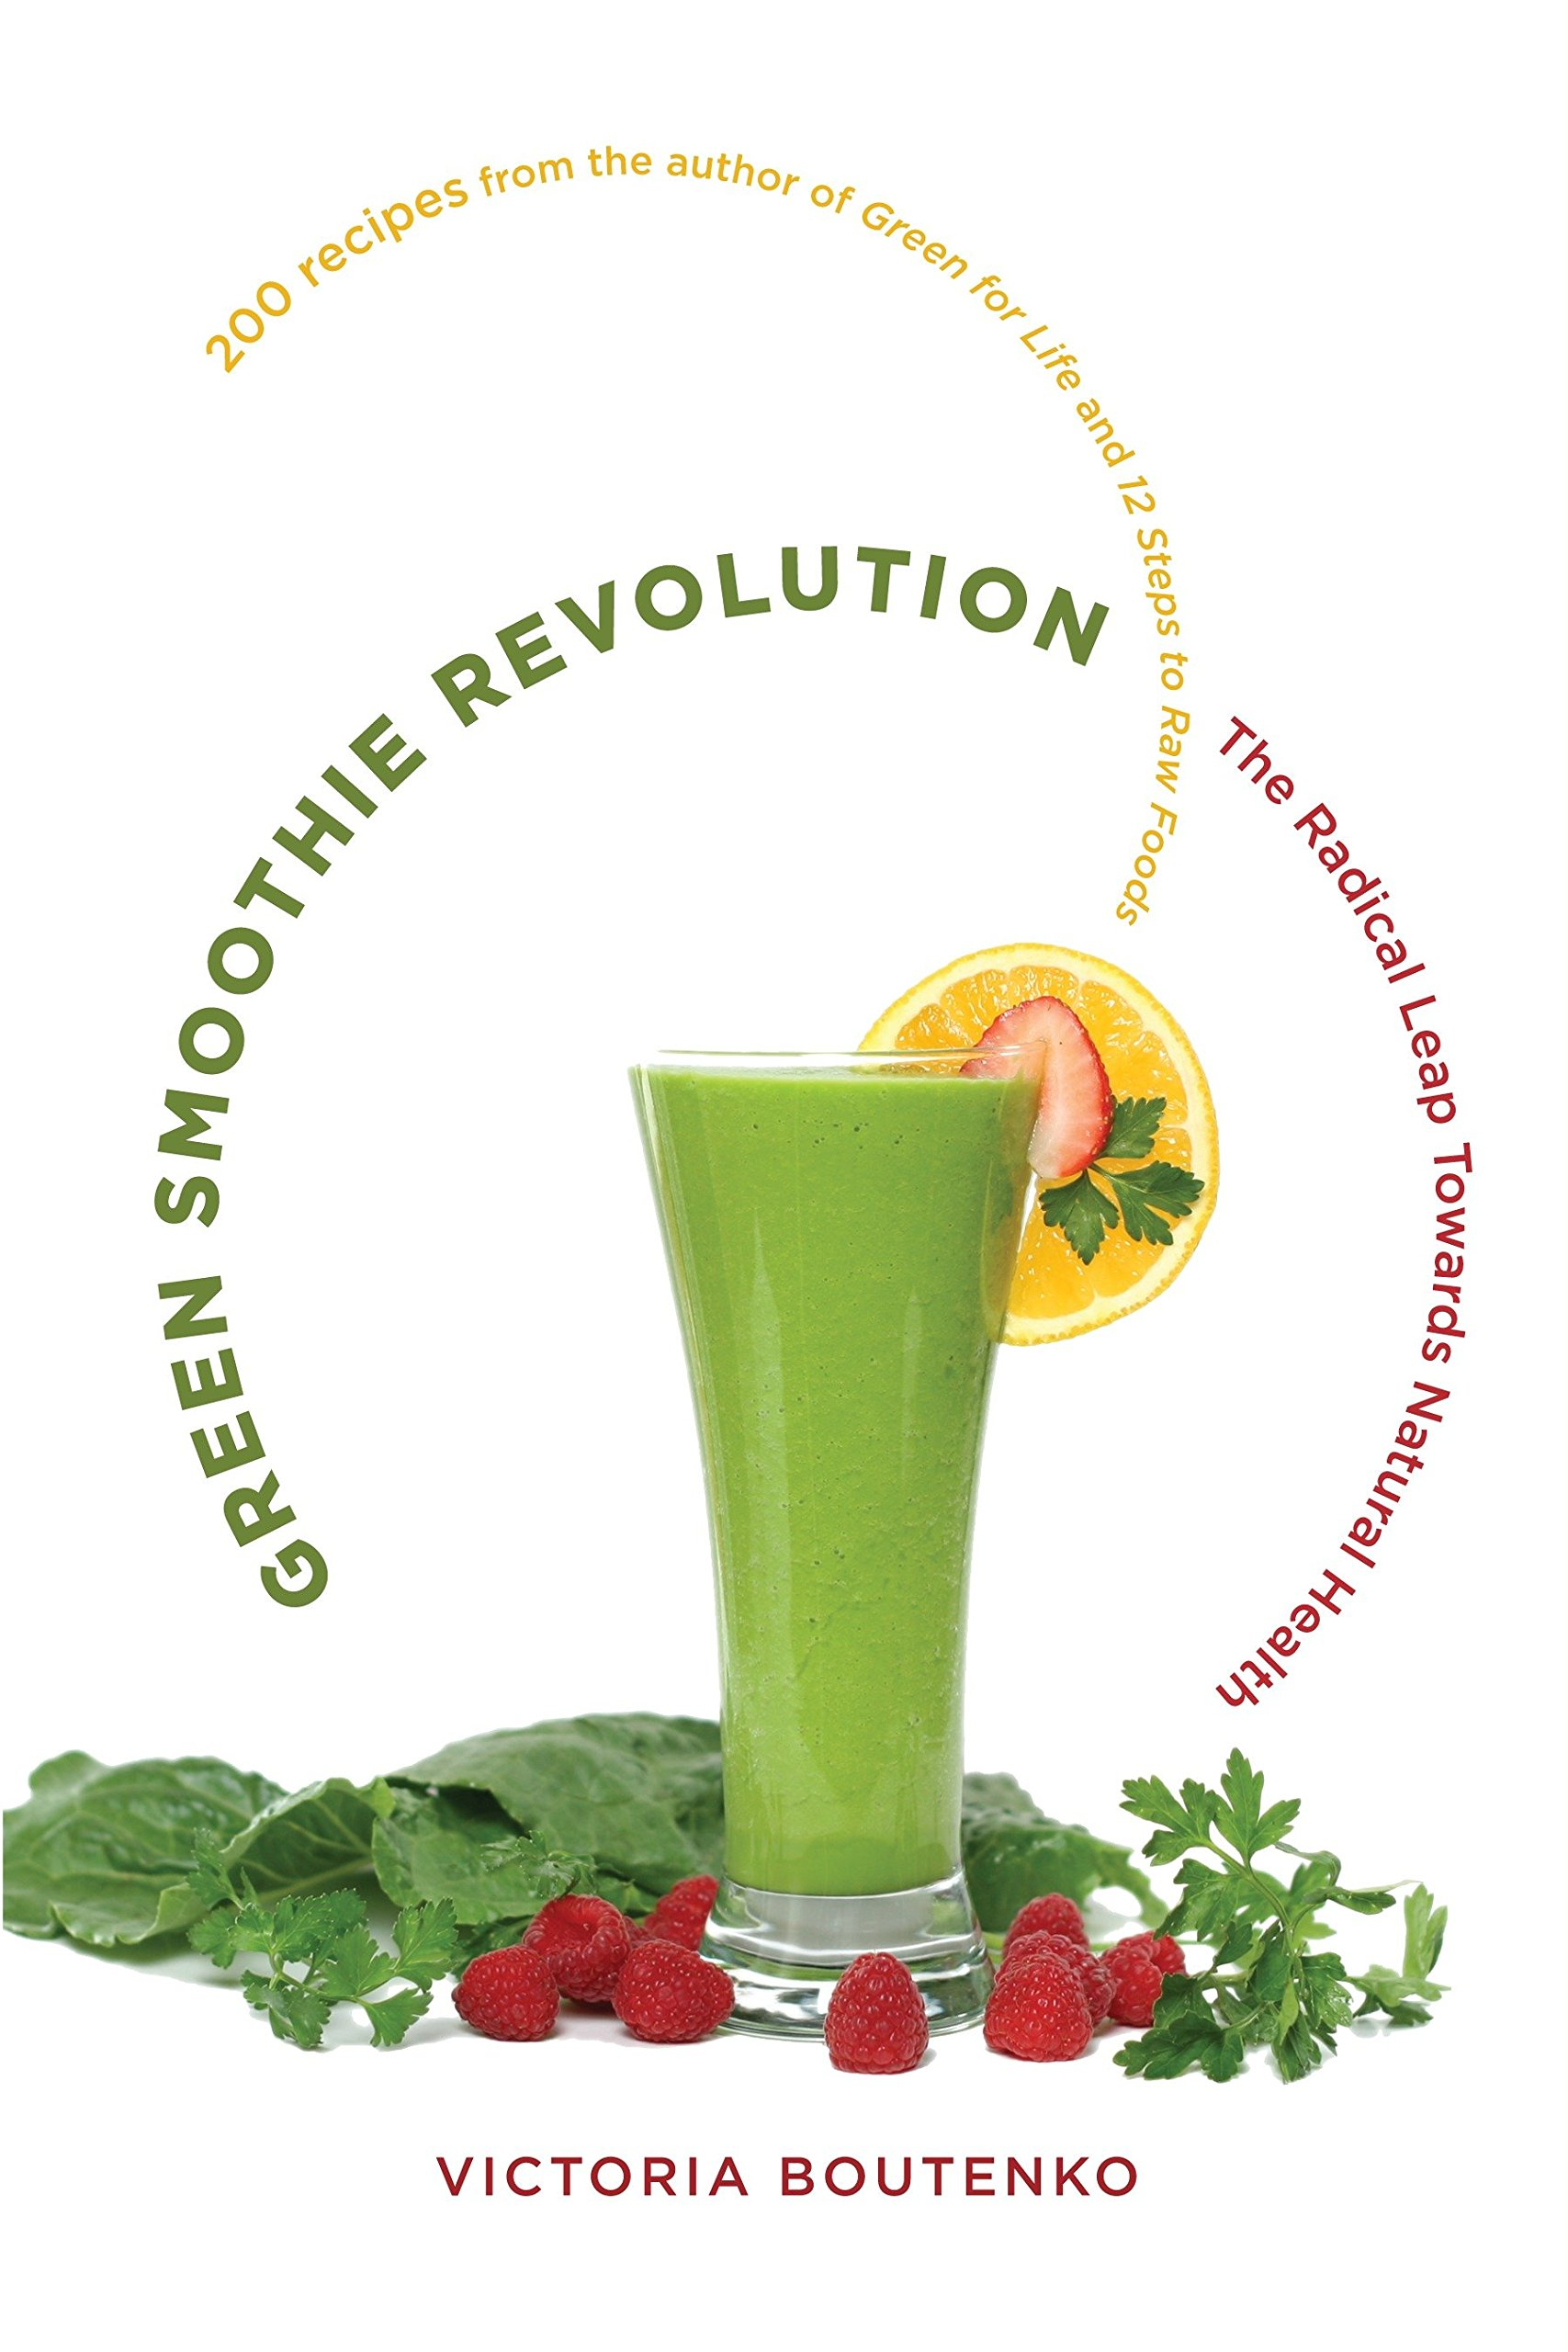 the green smoothie revolution - by Victoria BoutenkoThanks to processed and fast foods, being overworked, and feeling stressed while eating on the fly, it is increasingly difficult for most of us to eat anywhere near a balanced diet. We may not be obviously sick, but may suffer from lack of focus, insomnia, sluggishness, or any host of symptoms caused by nutritional deficiency. Green Smoothie Revolution takes aim at this silent epidemic by restoring balance to our diets.Combining nutrition and know-how with recipes that pack a powerhouse punch, Victoria Boutenko reintroduces long neglected fruits, vegetables, and greens in the most persuasive style for our busy lives: with fast prep and delicious results. Featuring 200 recipes, Green Smoothie Revolution offers both simplicity (4 ripe pears, 1 bunch parsley, 2 cups water; blend well) and enough variety to keep taste buds happy and nutrients coming from a wealth of options.